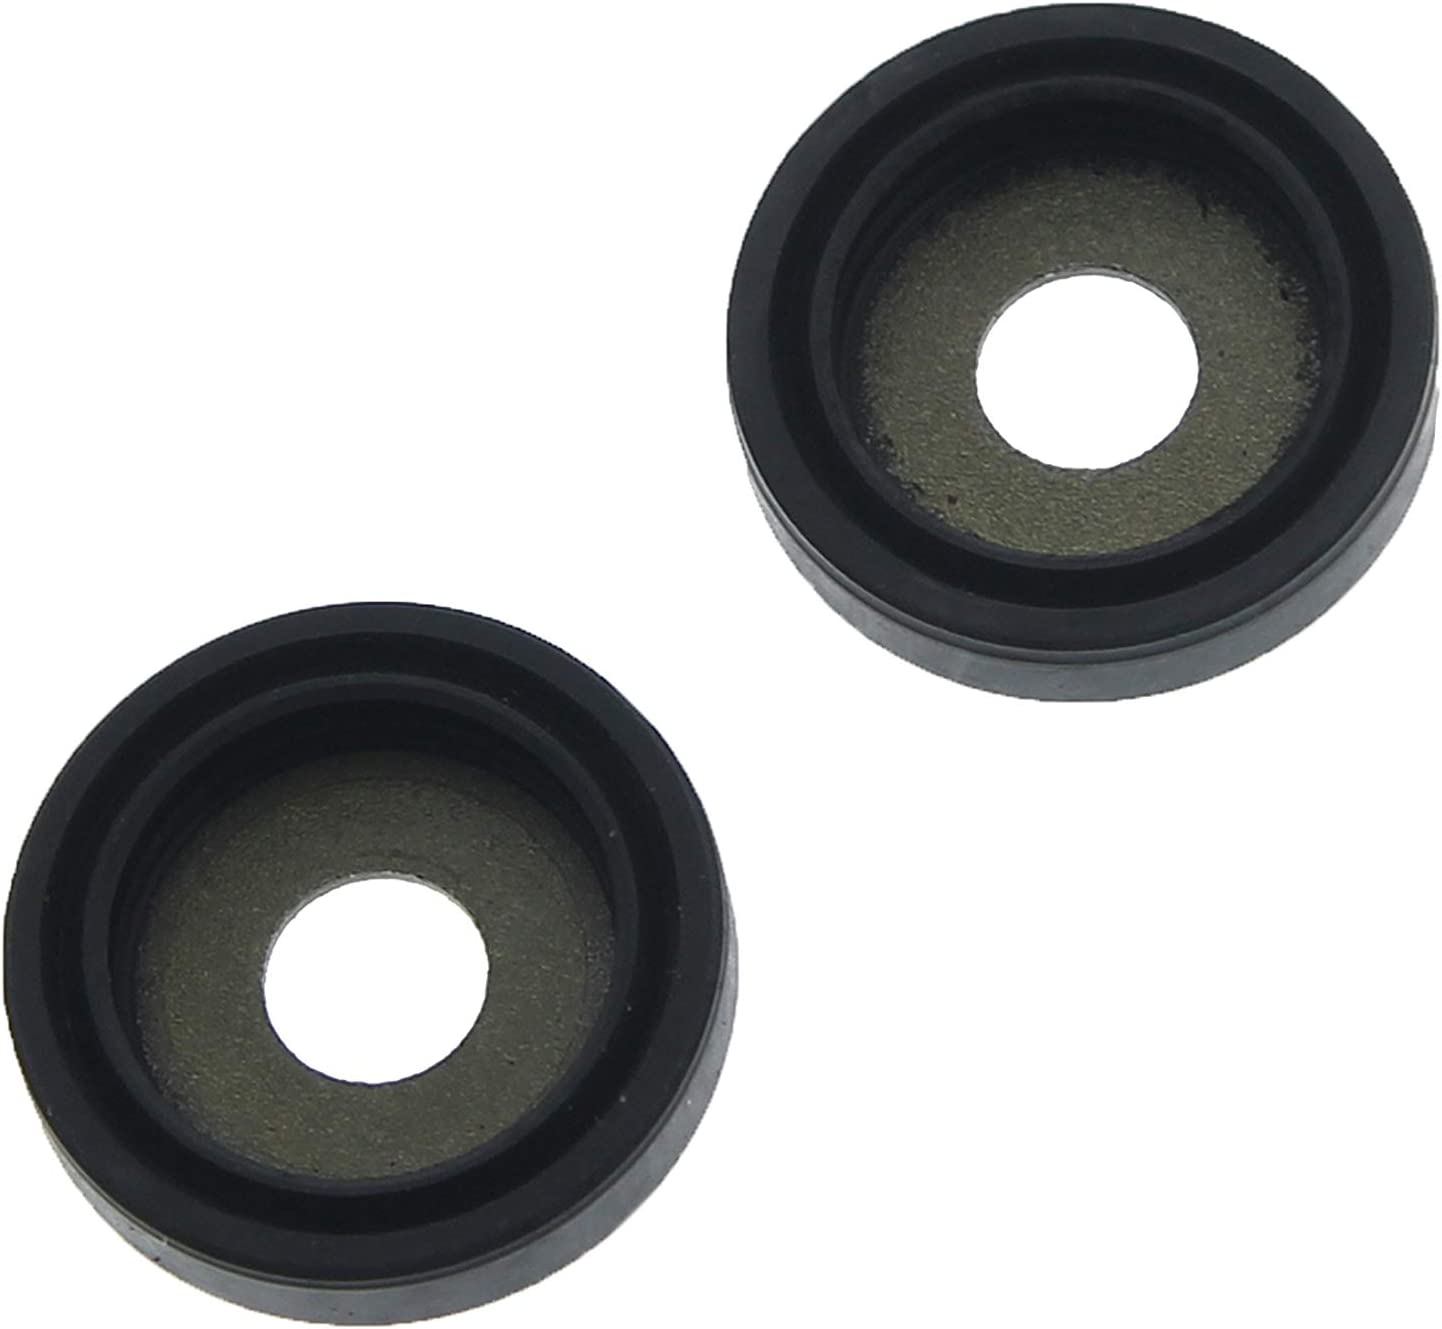 for Honda Foreman Rubicon 500 Race Driven Front Upper /& Lower A Arm Bushing Kit One Side